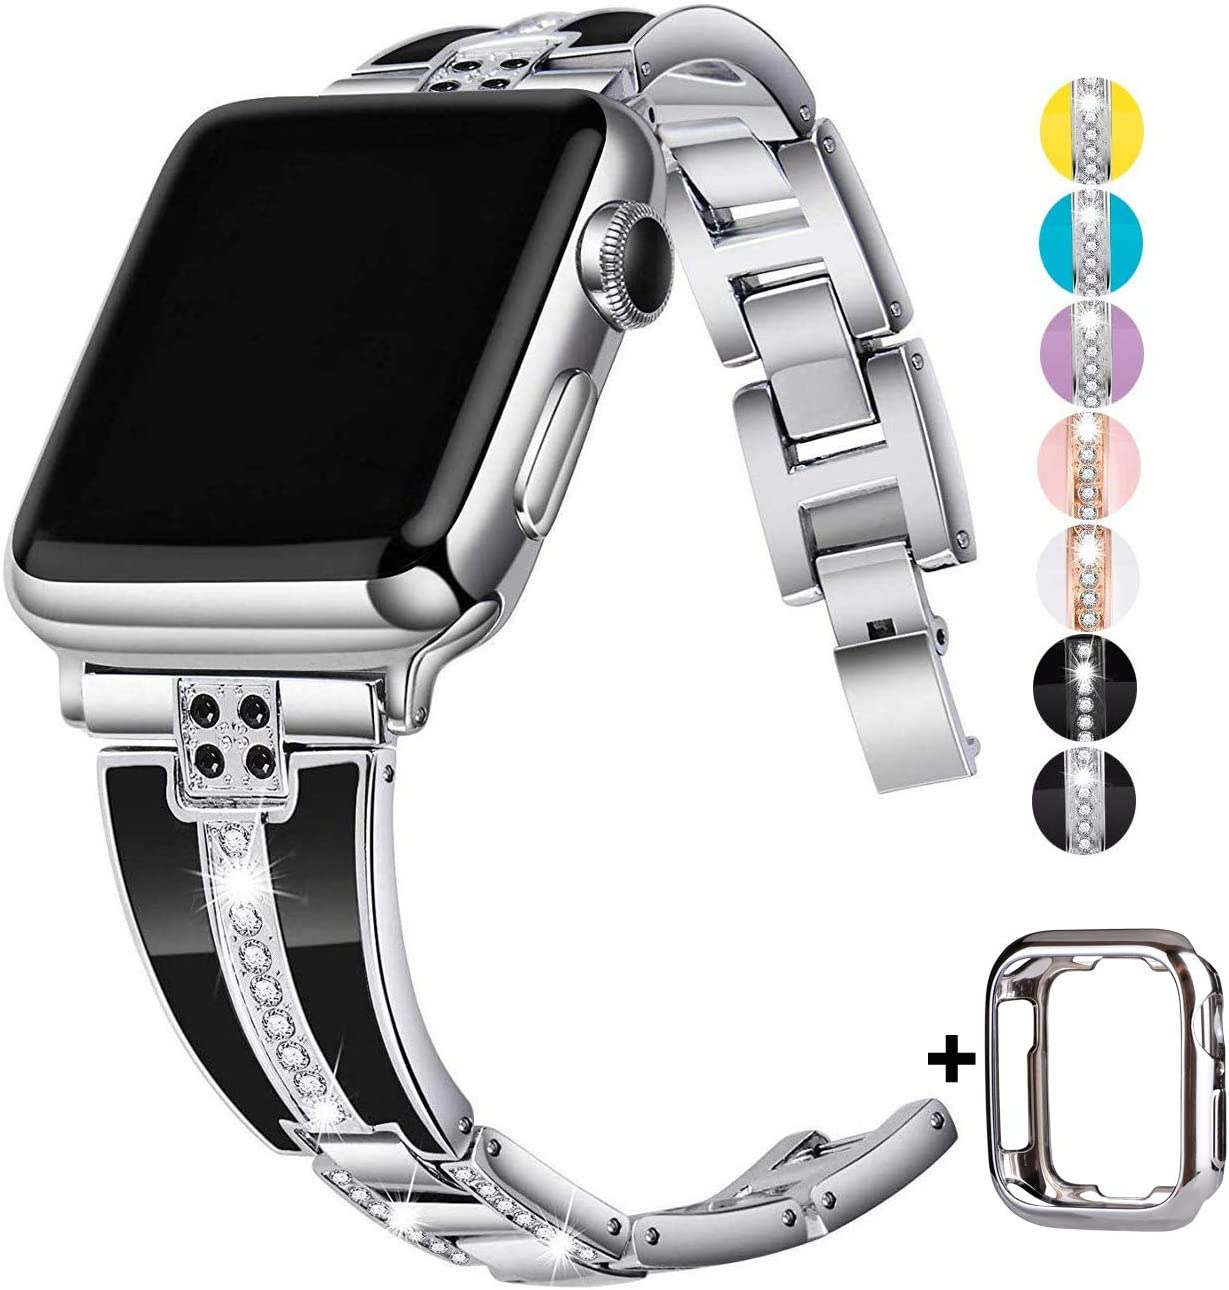 JSGJMY Bling Bands Compatible with Apple Watch Band 38mm 40mm 42mm 44mm with Case,Women Diamond Rhinestone Metal Jewelry Wristband Strap for iwatch Series SE/6/5/4/3/2/1 (Silver, 38mm/40mm)